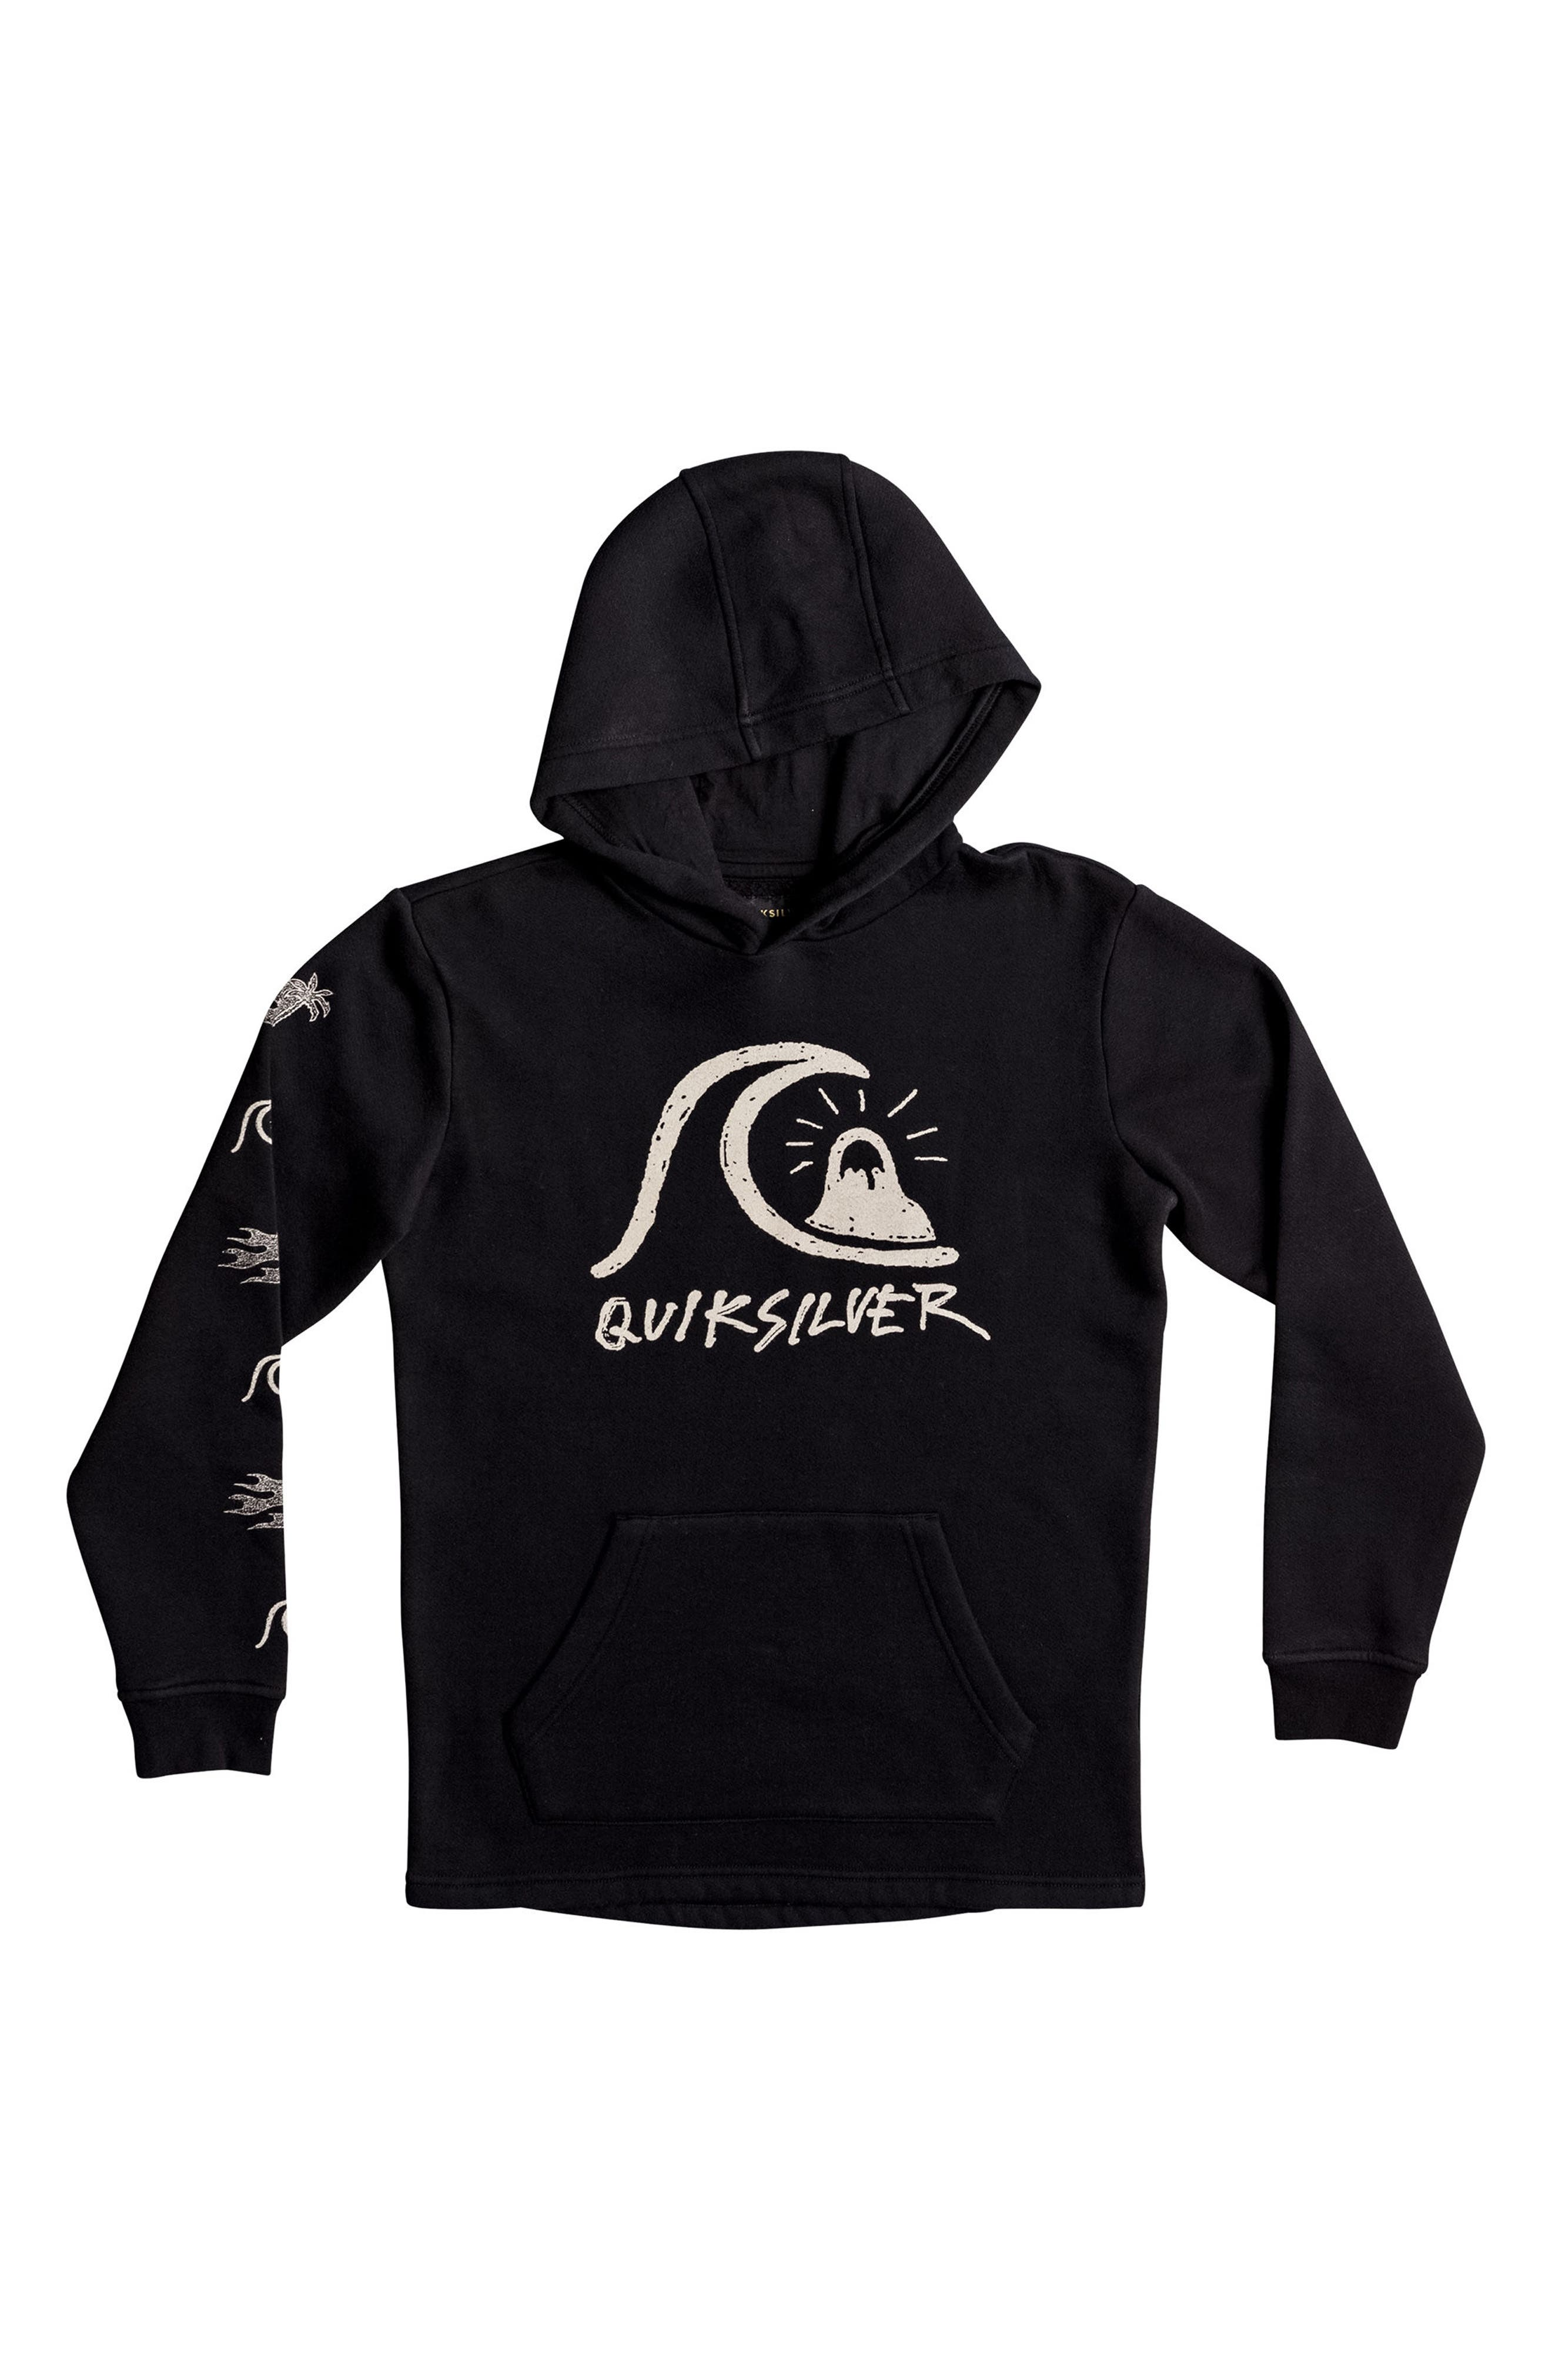 Alternate Image 1 Selected - Quiksilver Venice Bliss Graphic Pullover Hoodie (Big Boys)